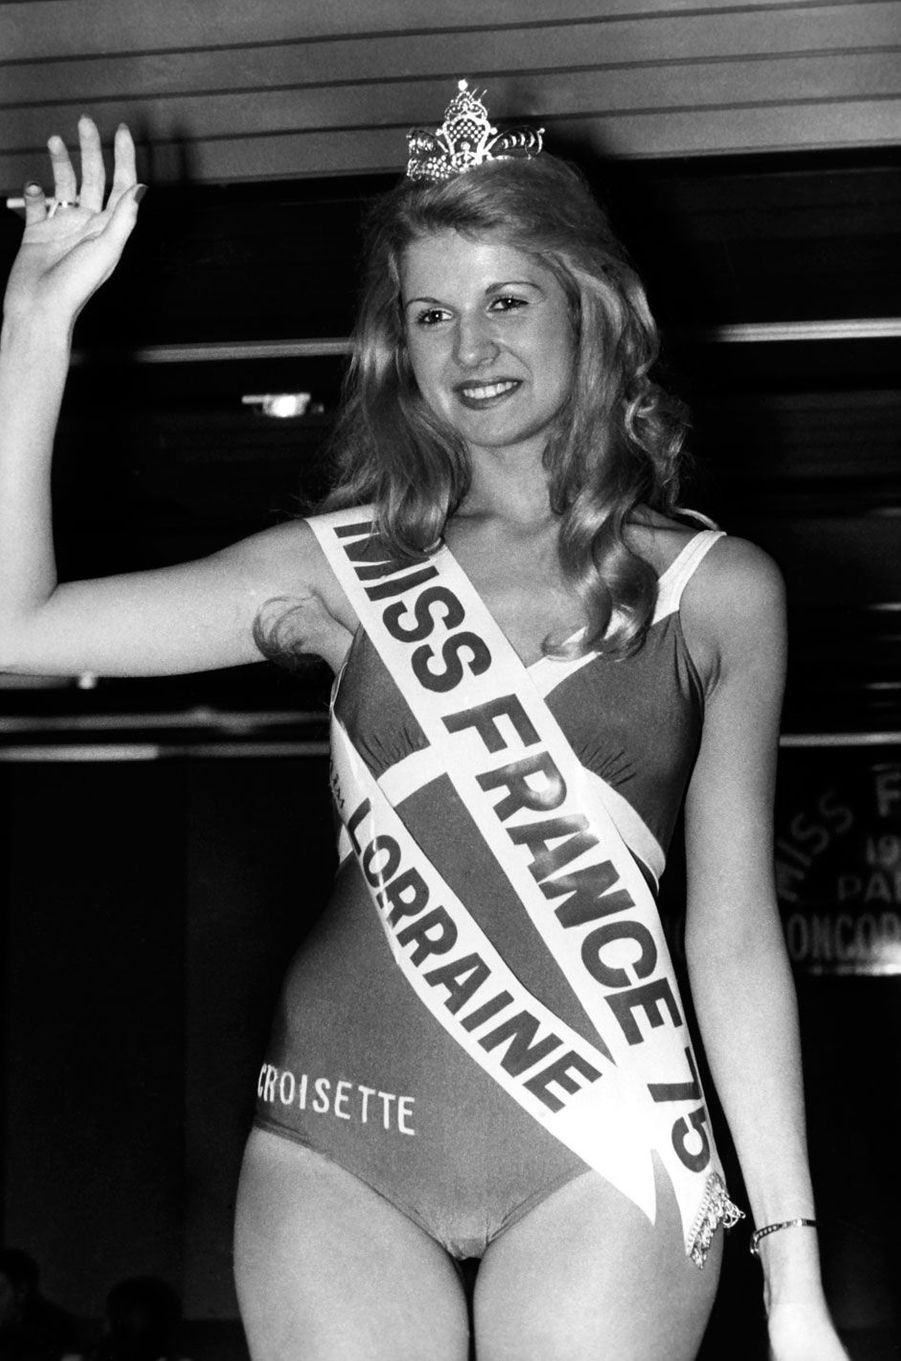 Miss France 1975, Sophie Perin